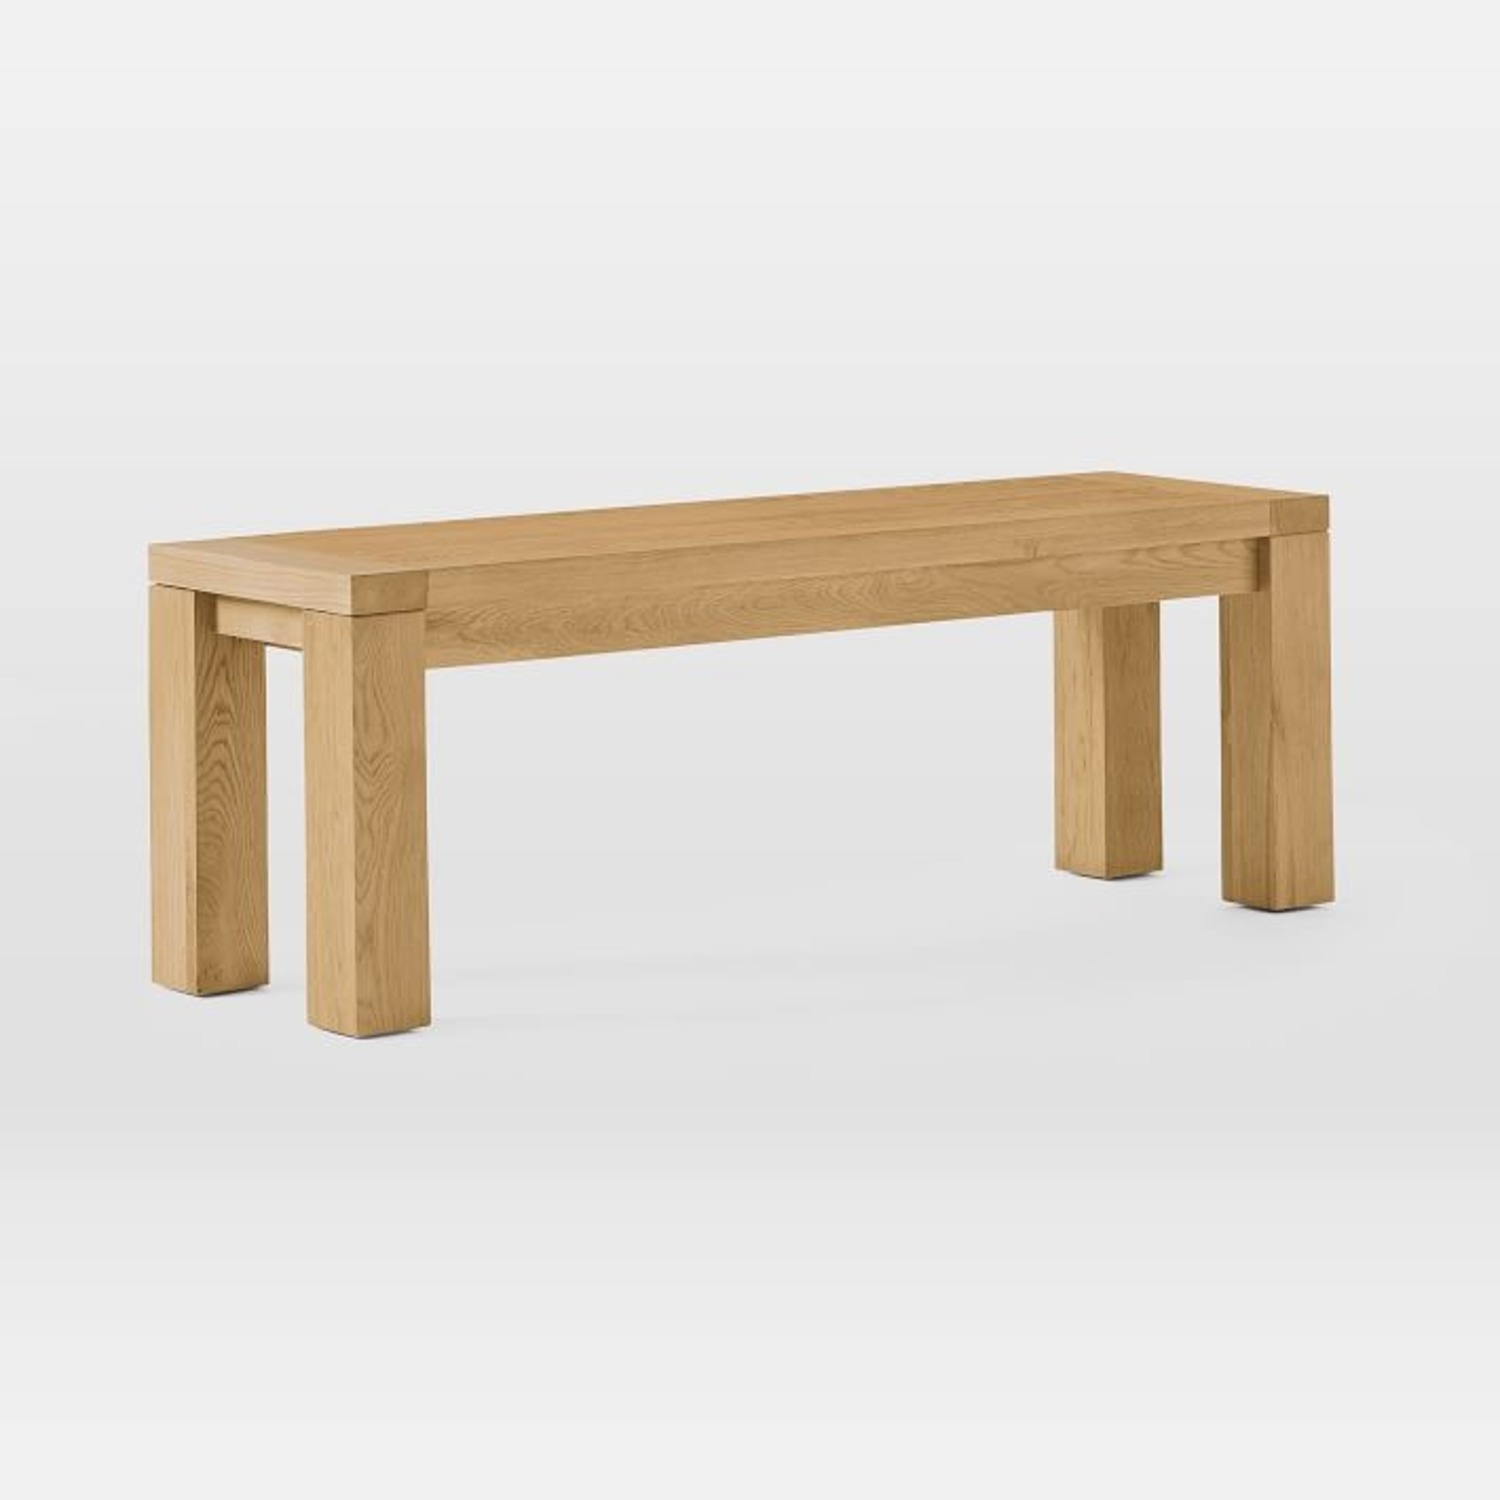 West Elm Tahoe Solid Wood Dining Bench - image-1